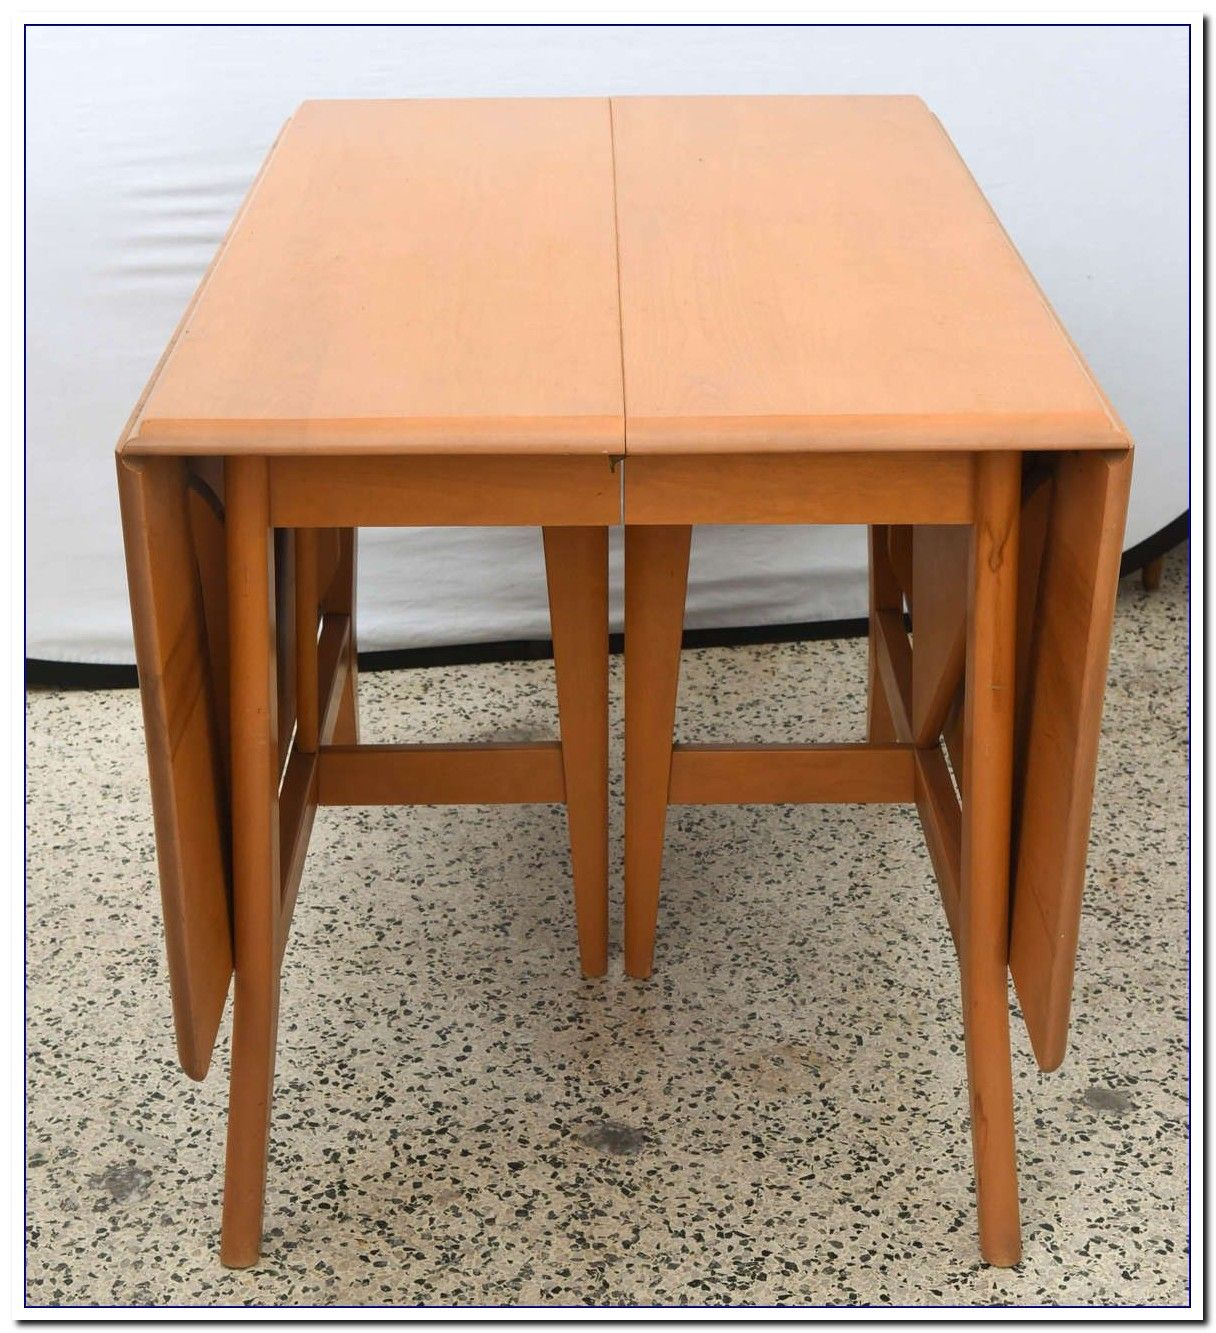 116 Reference Of Rectangular Drop Leaf Dining Table With Chairs Kitchen Table Settings Drop Leaf Dining Table Dining Table